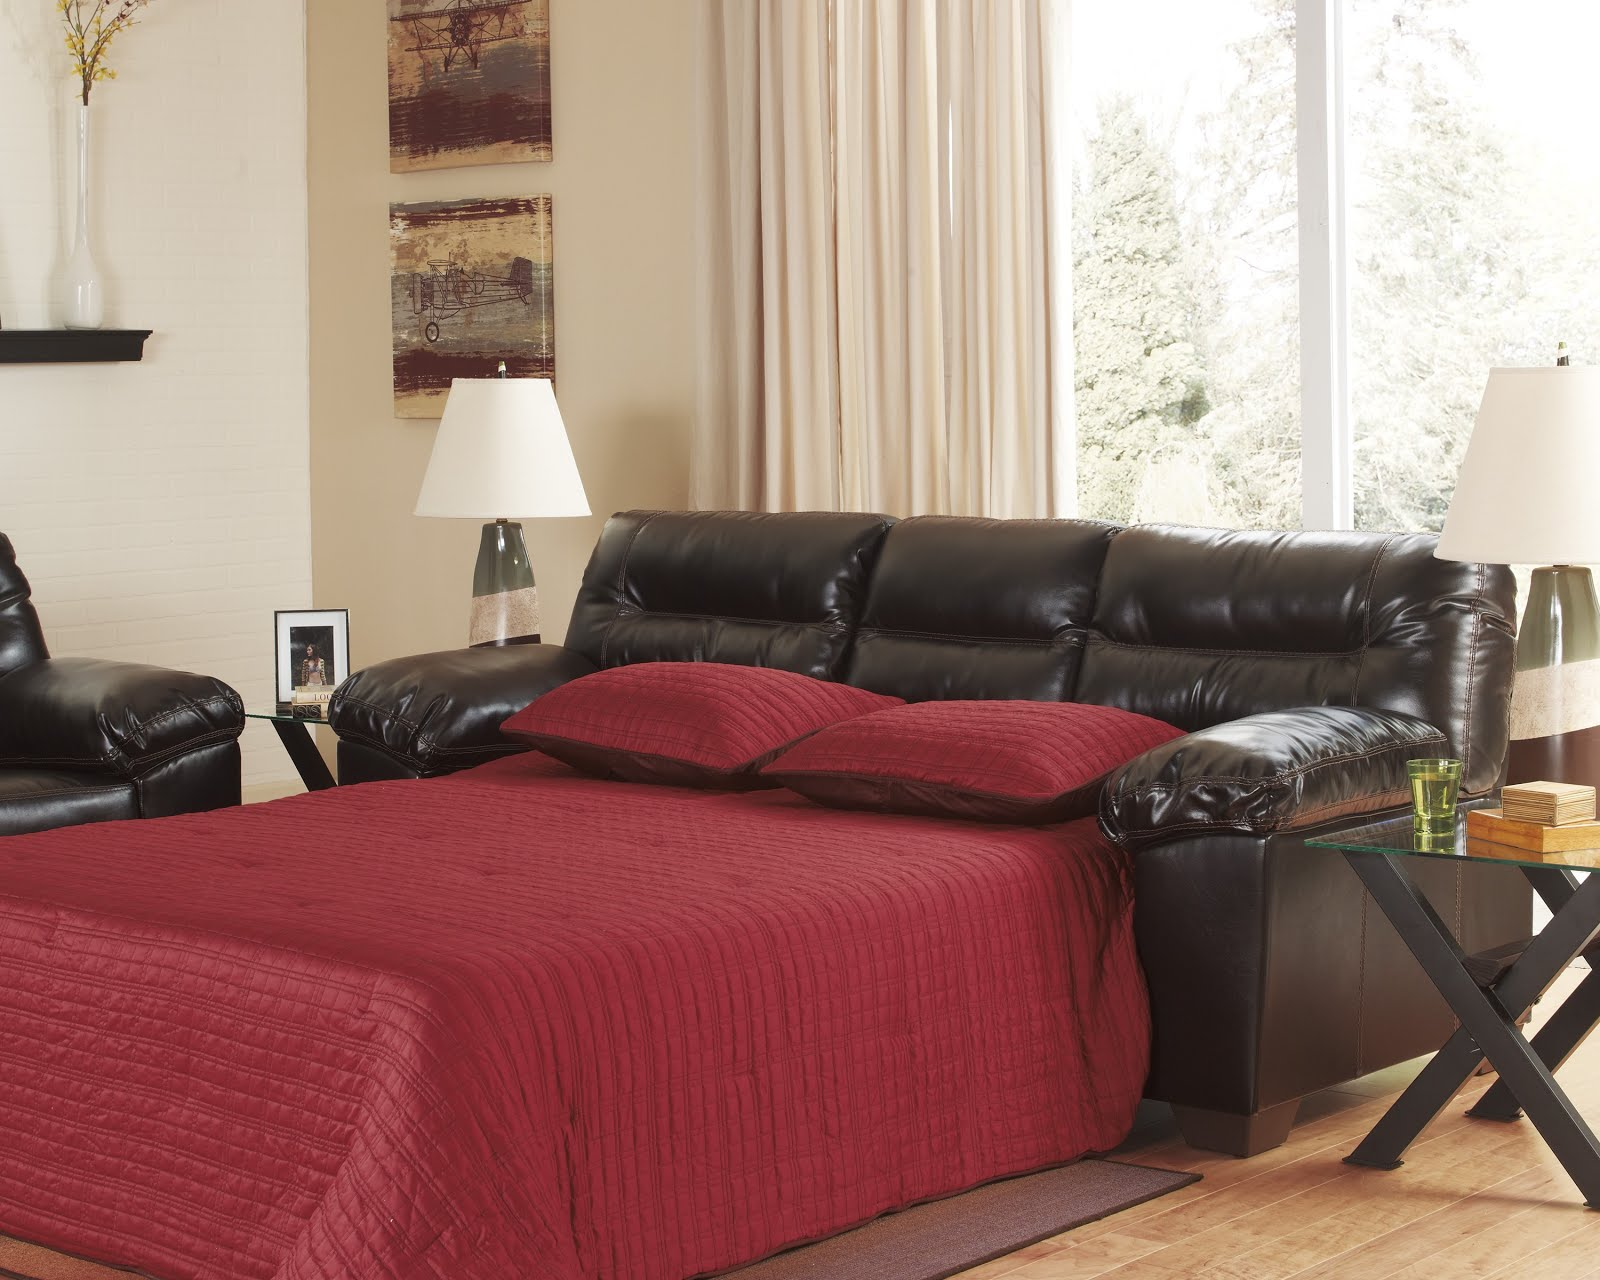 Simple Review About Living Room Furniture Sleeper Sofas For Small